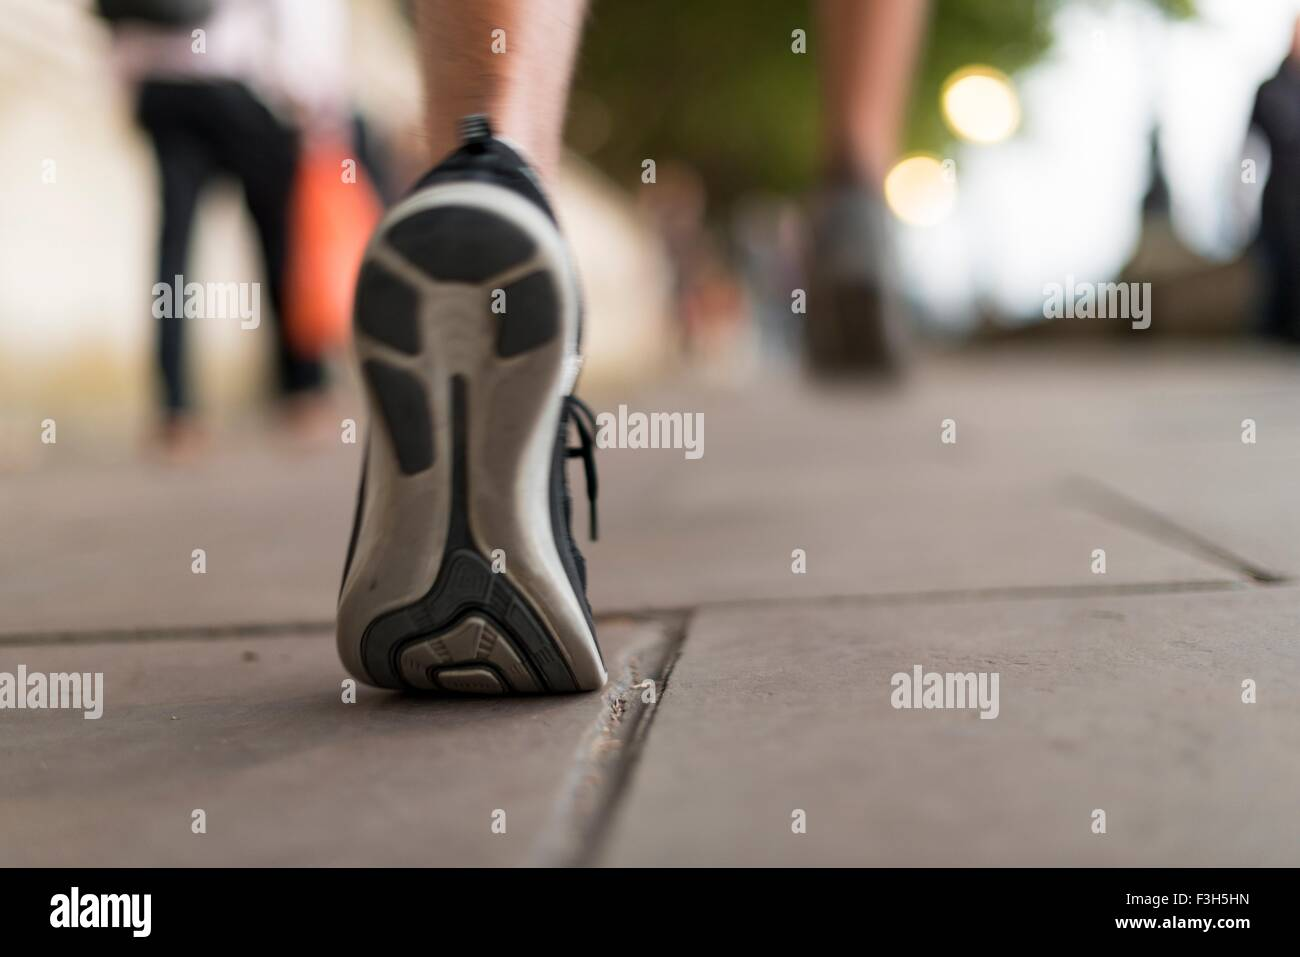 Close up of male runners trainers running on sidewalk - Stock Image